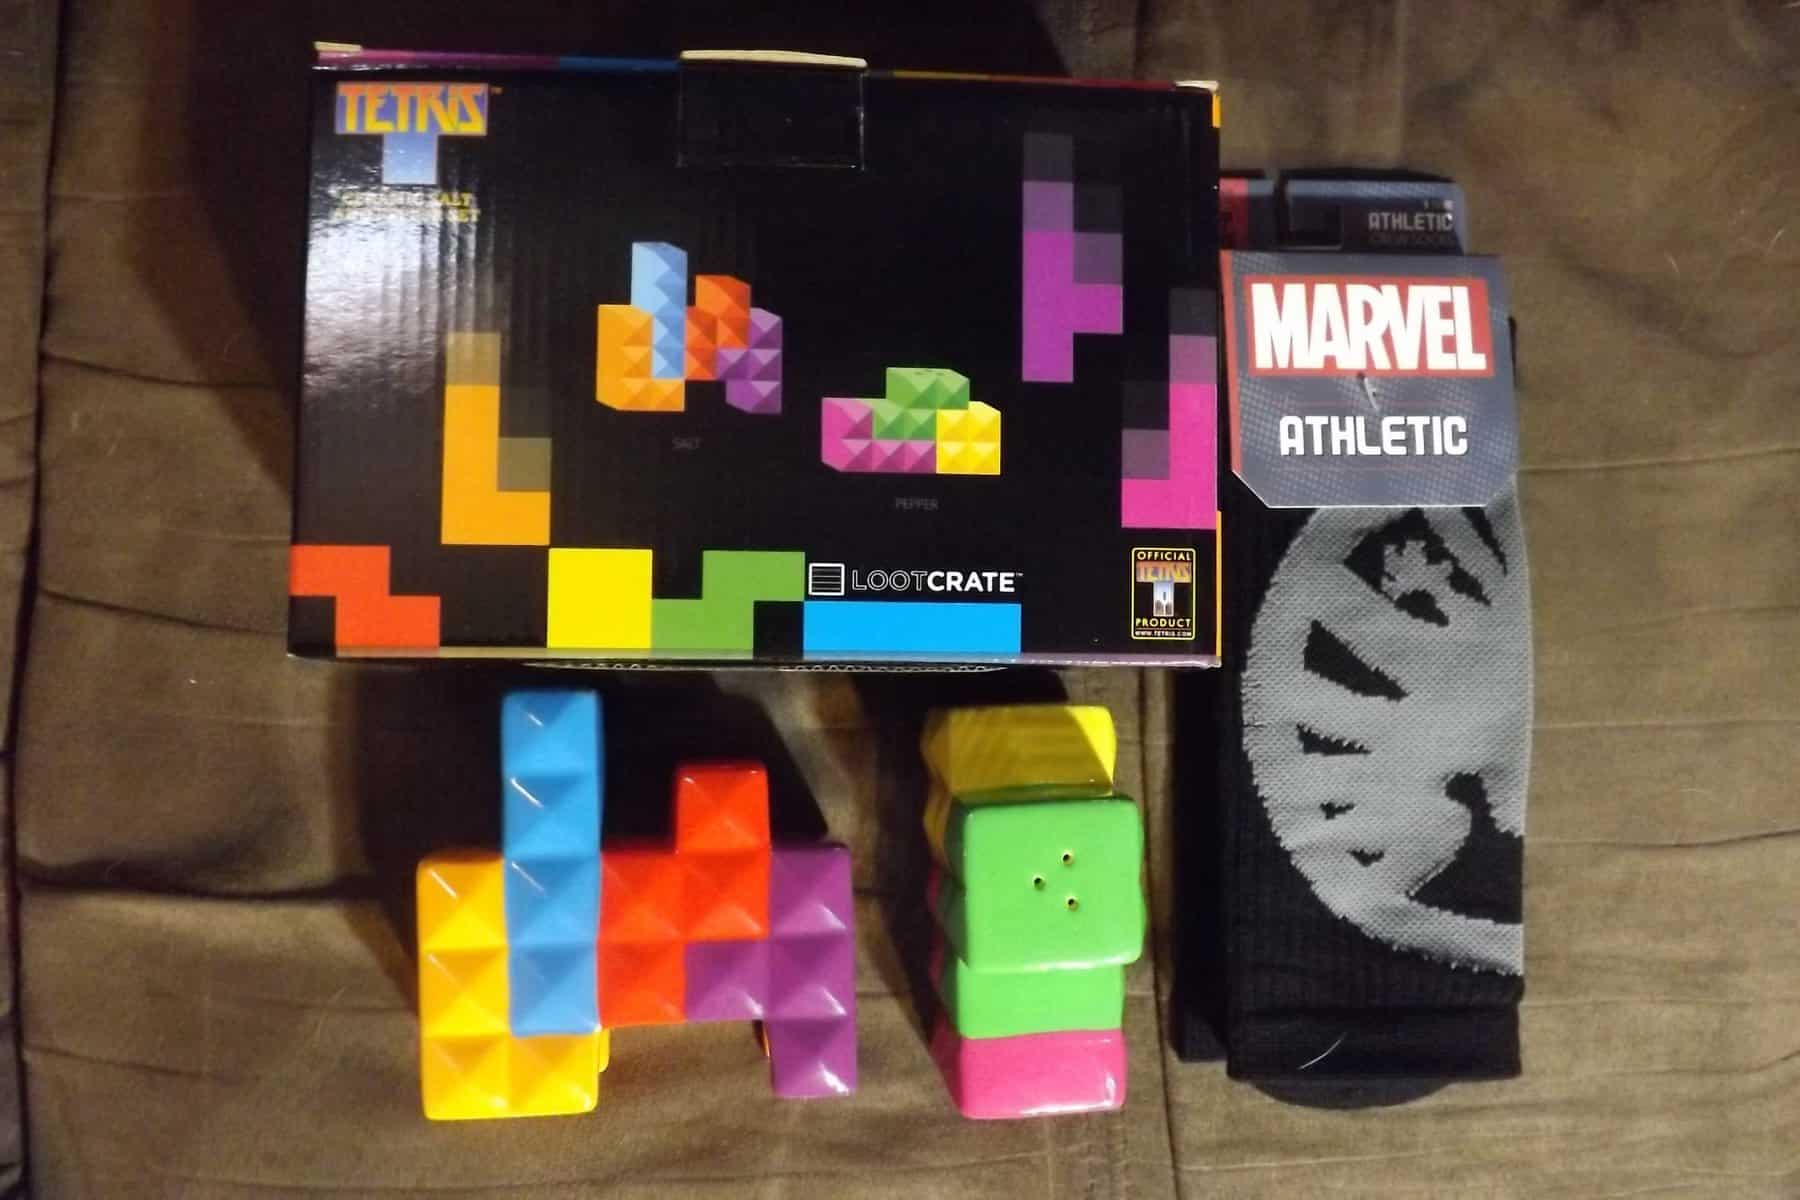 February 2017 Loot Crate DX Review - Tertris, Marvel